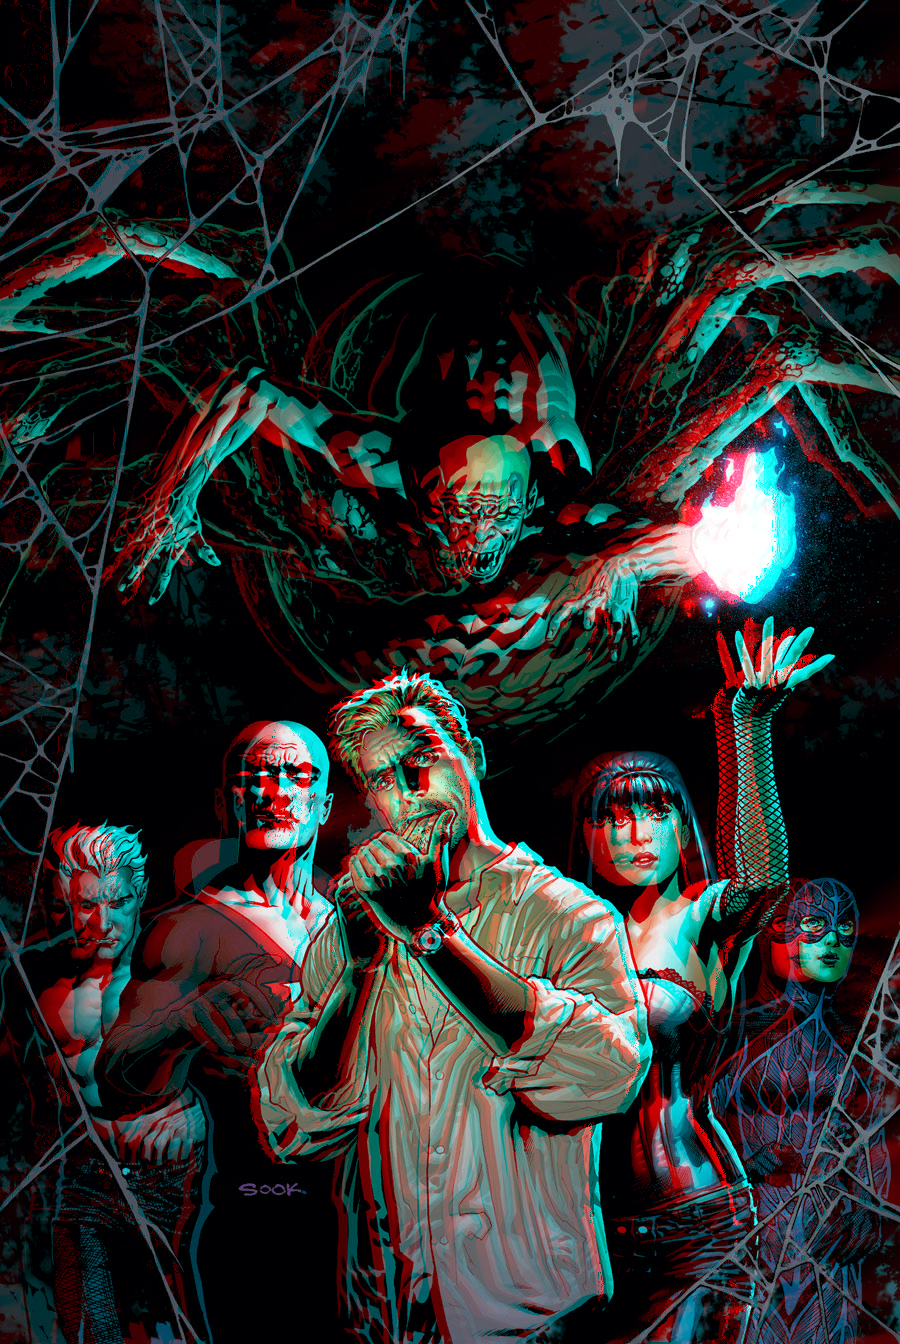 justice_league_dark_in_3d_anaglyph_by_xmancyclops-d9f0u3d